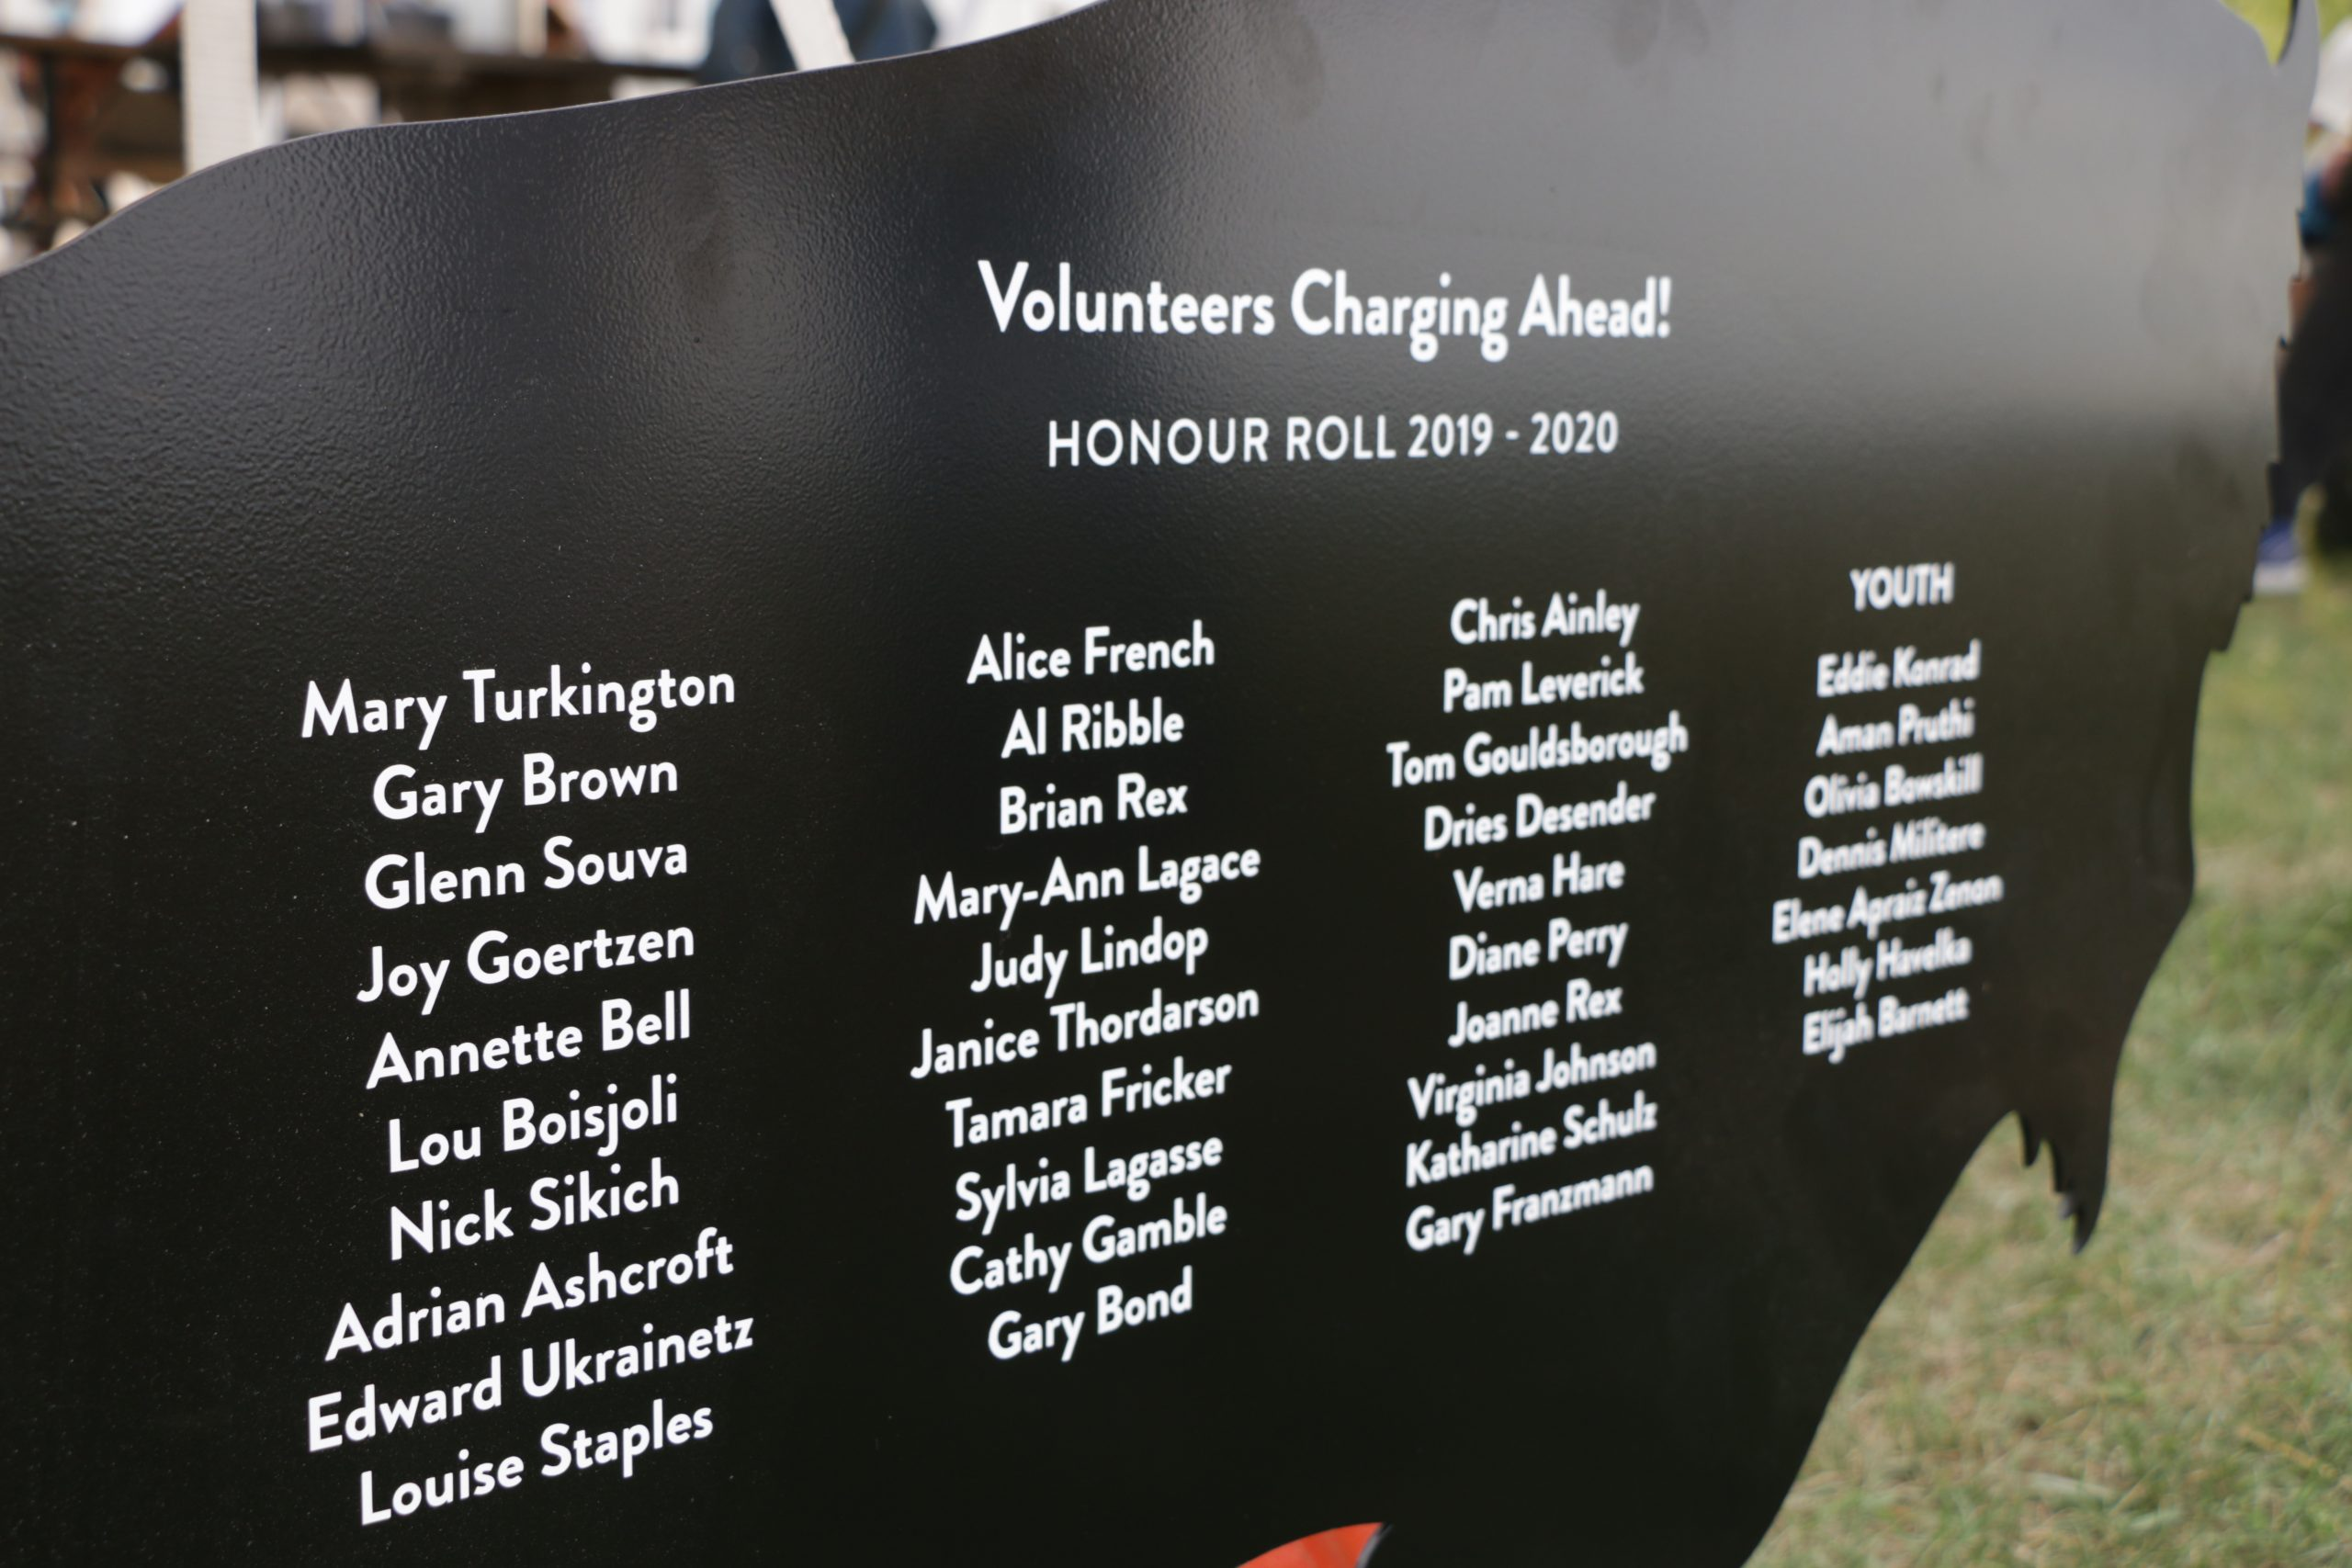 Columns of names are listed on a black buffalo shaped piece of metal, titled Volunteers Charging Ahead! 2019-2020 Honour Roll